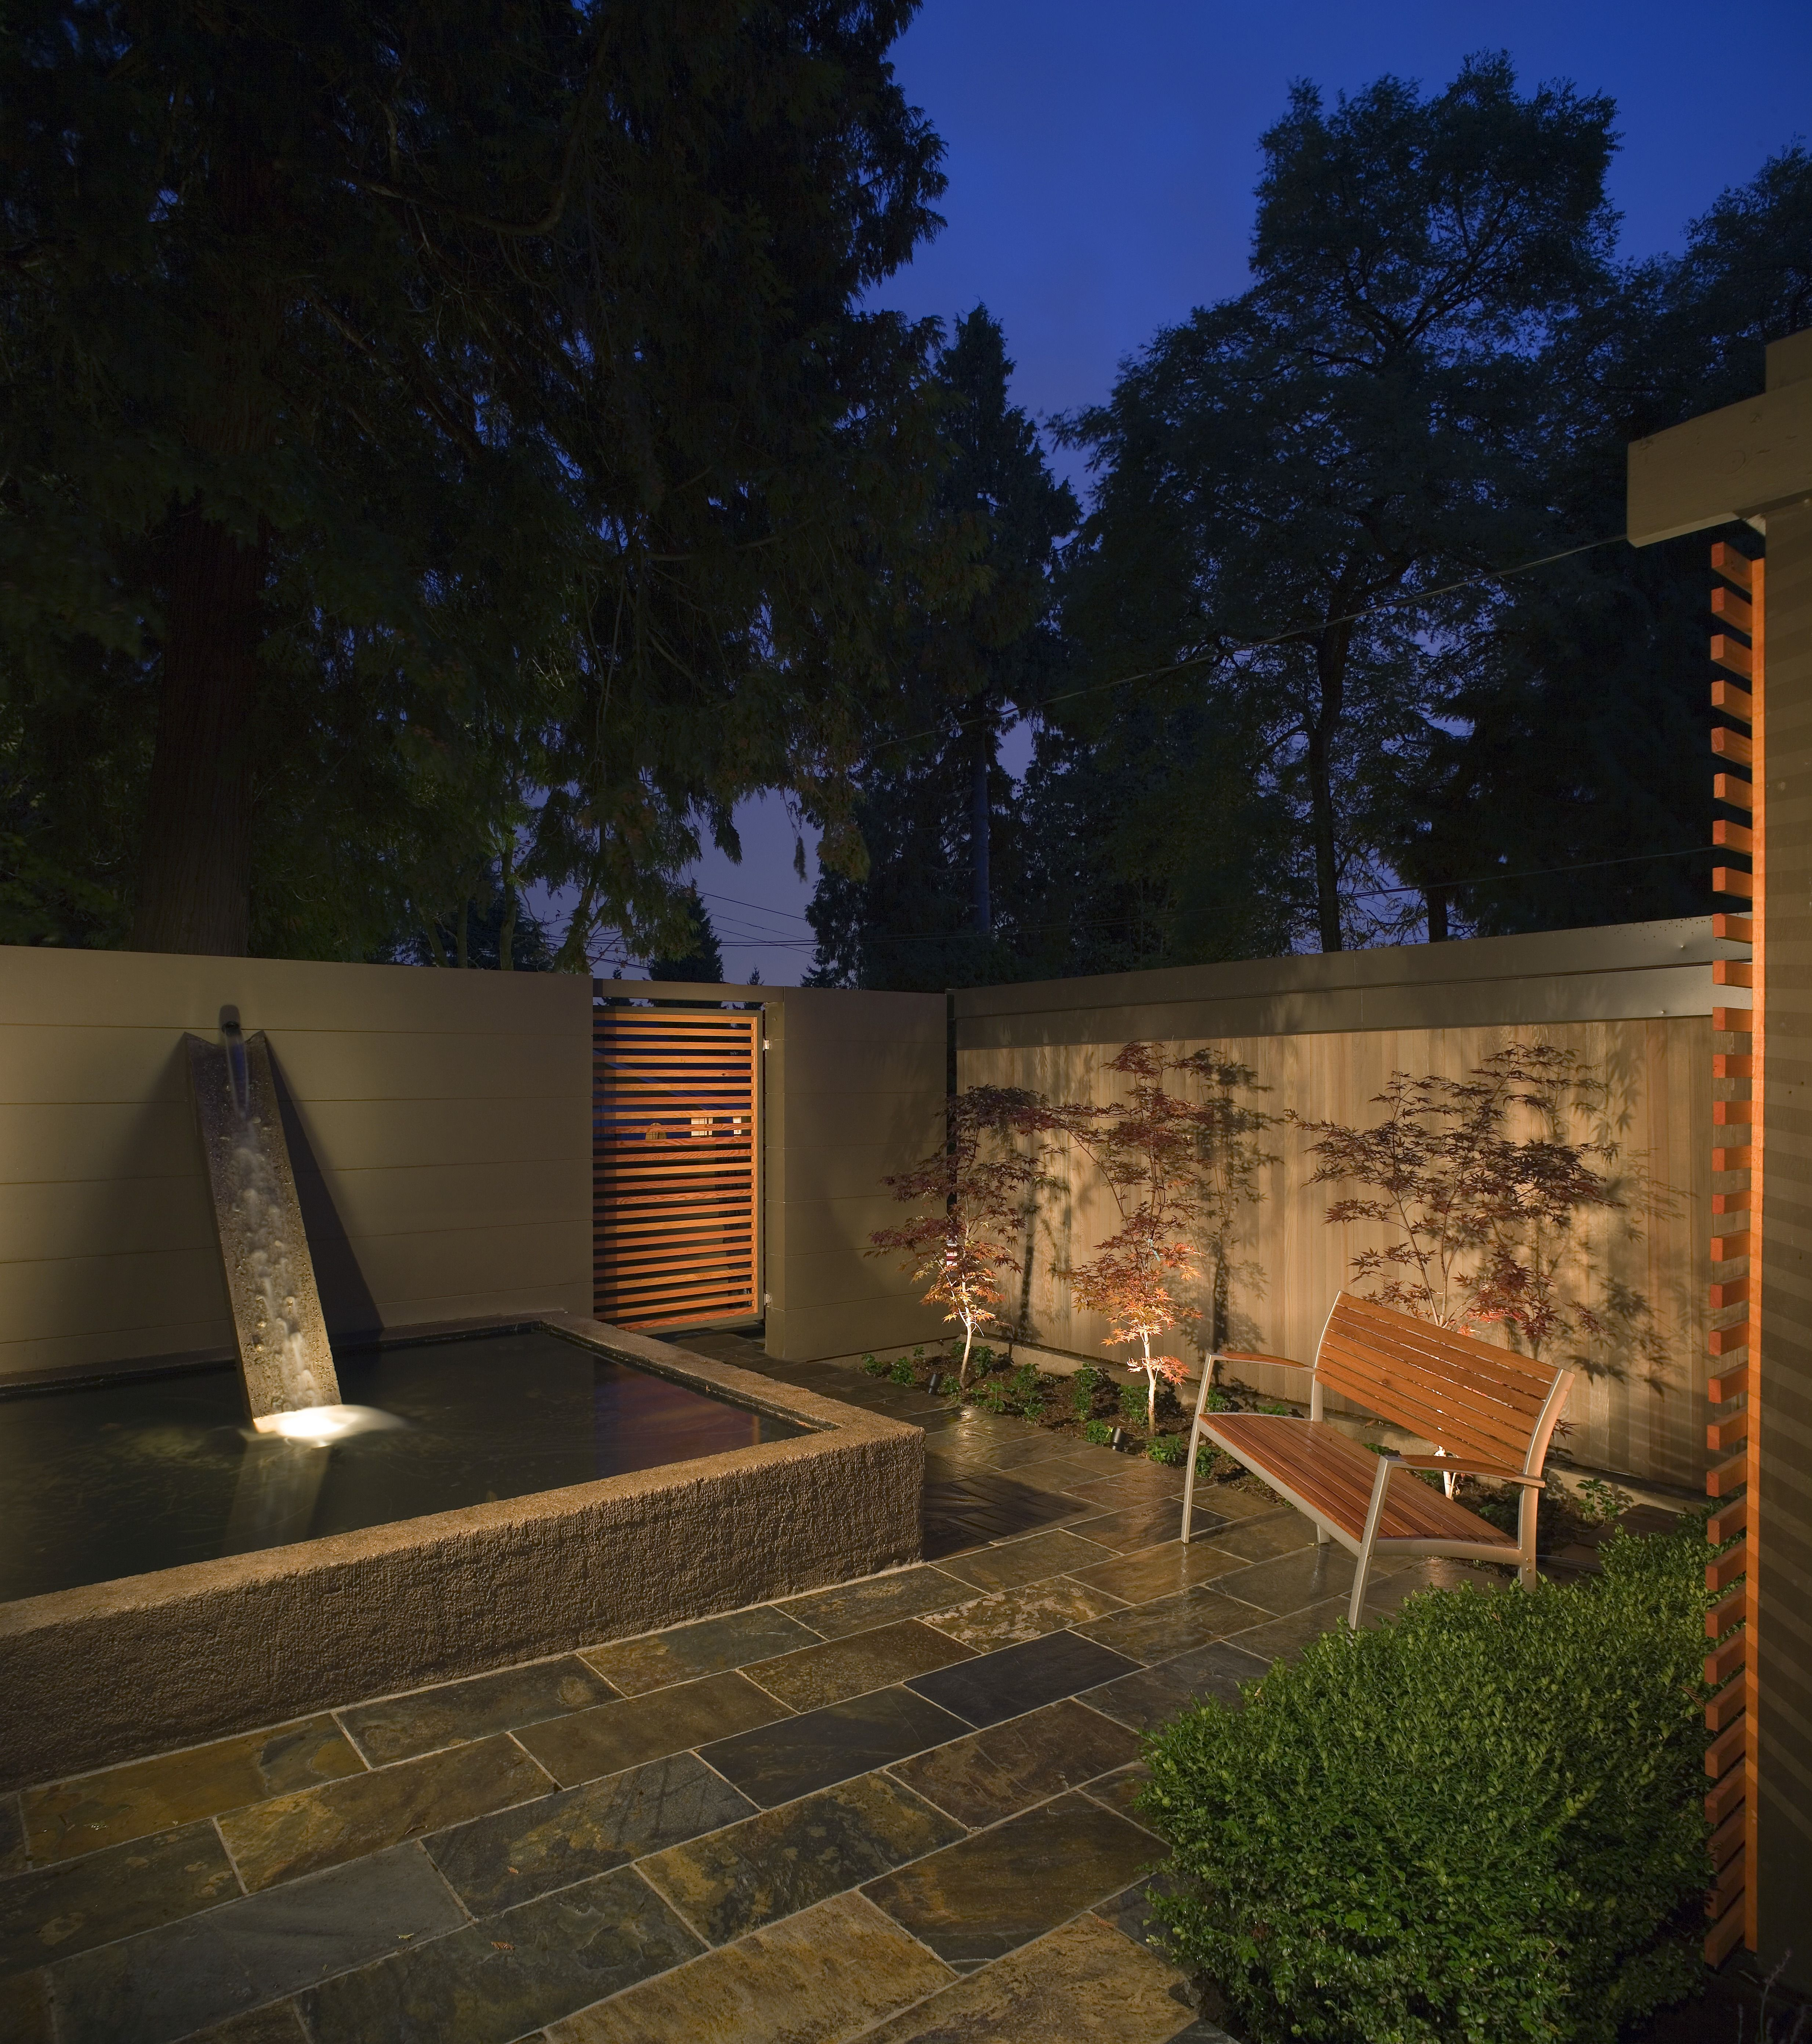 89e15e23743b66fe9cb4853af27d8486 Top Result 50 Awesome Cost Of Outdoor Fireplace Picture 2018 Zat3